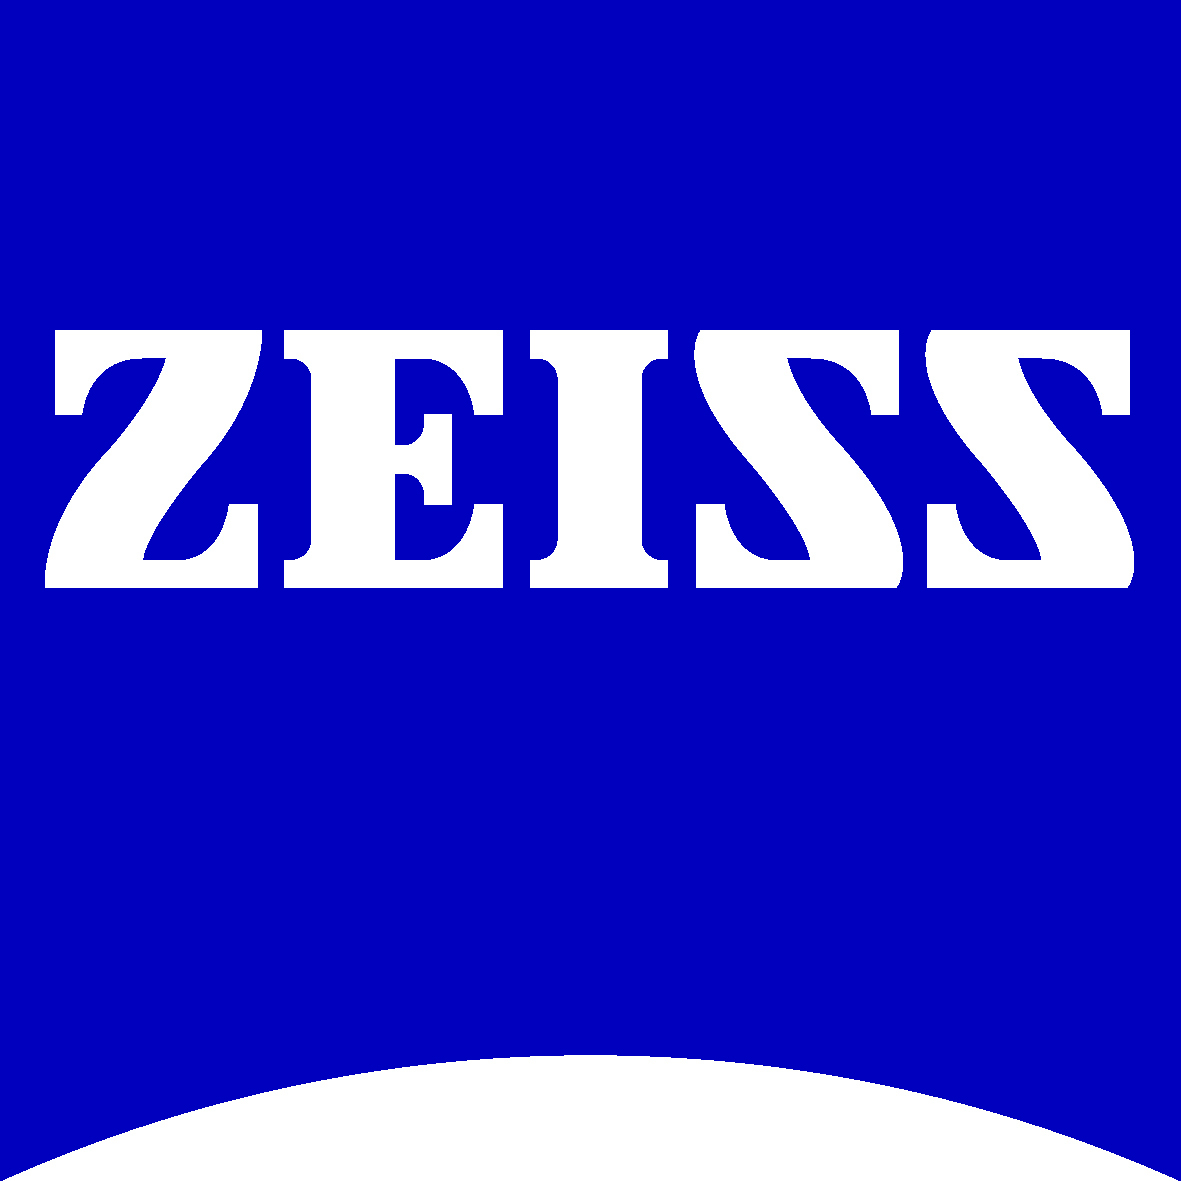 Zeiss Cinemizer OLED, visualizador personal Full HD 3D